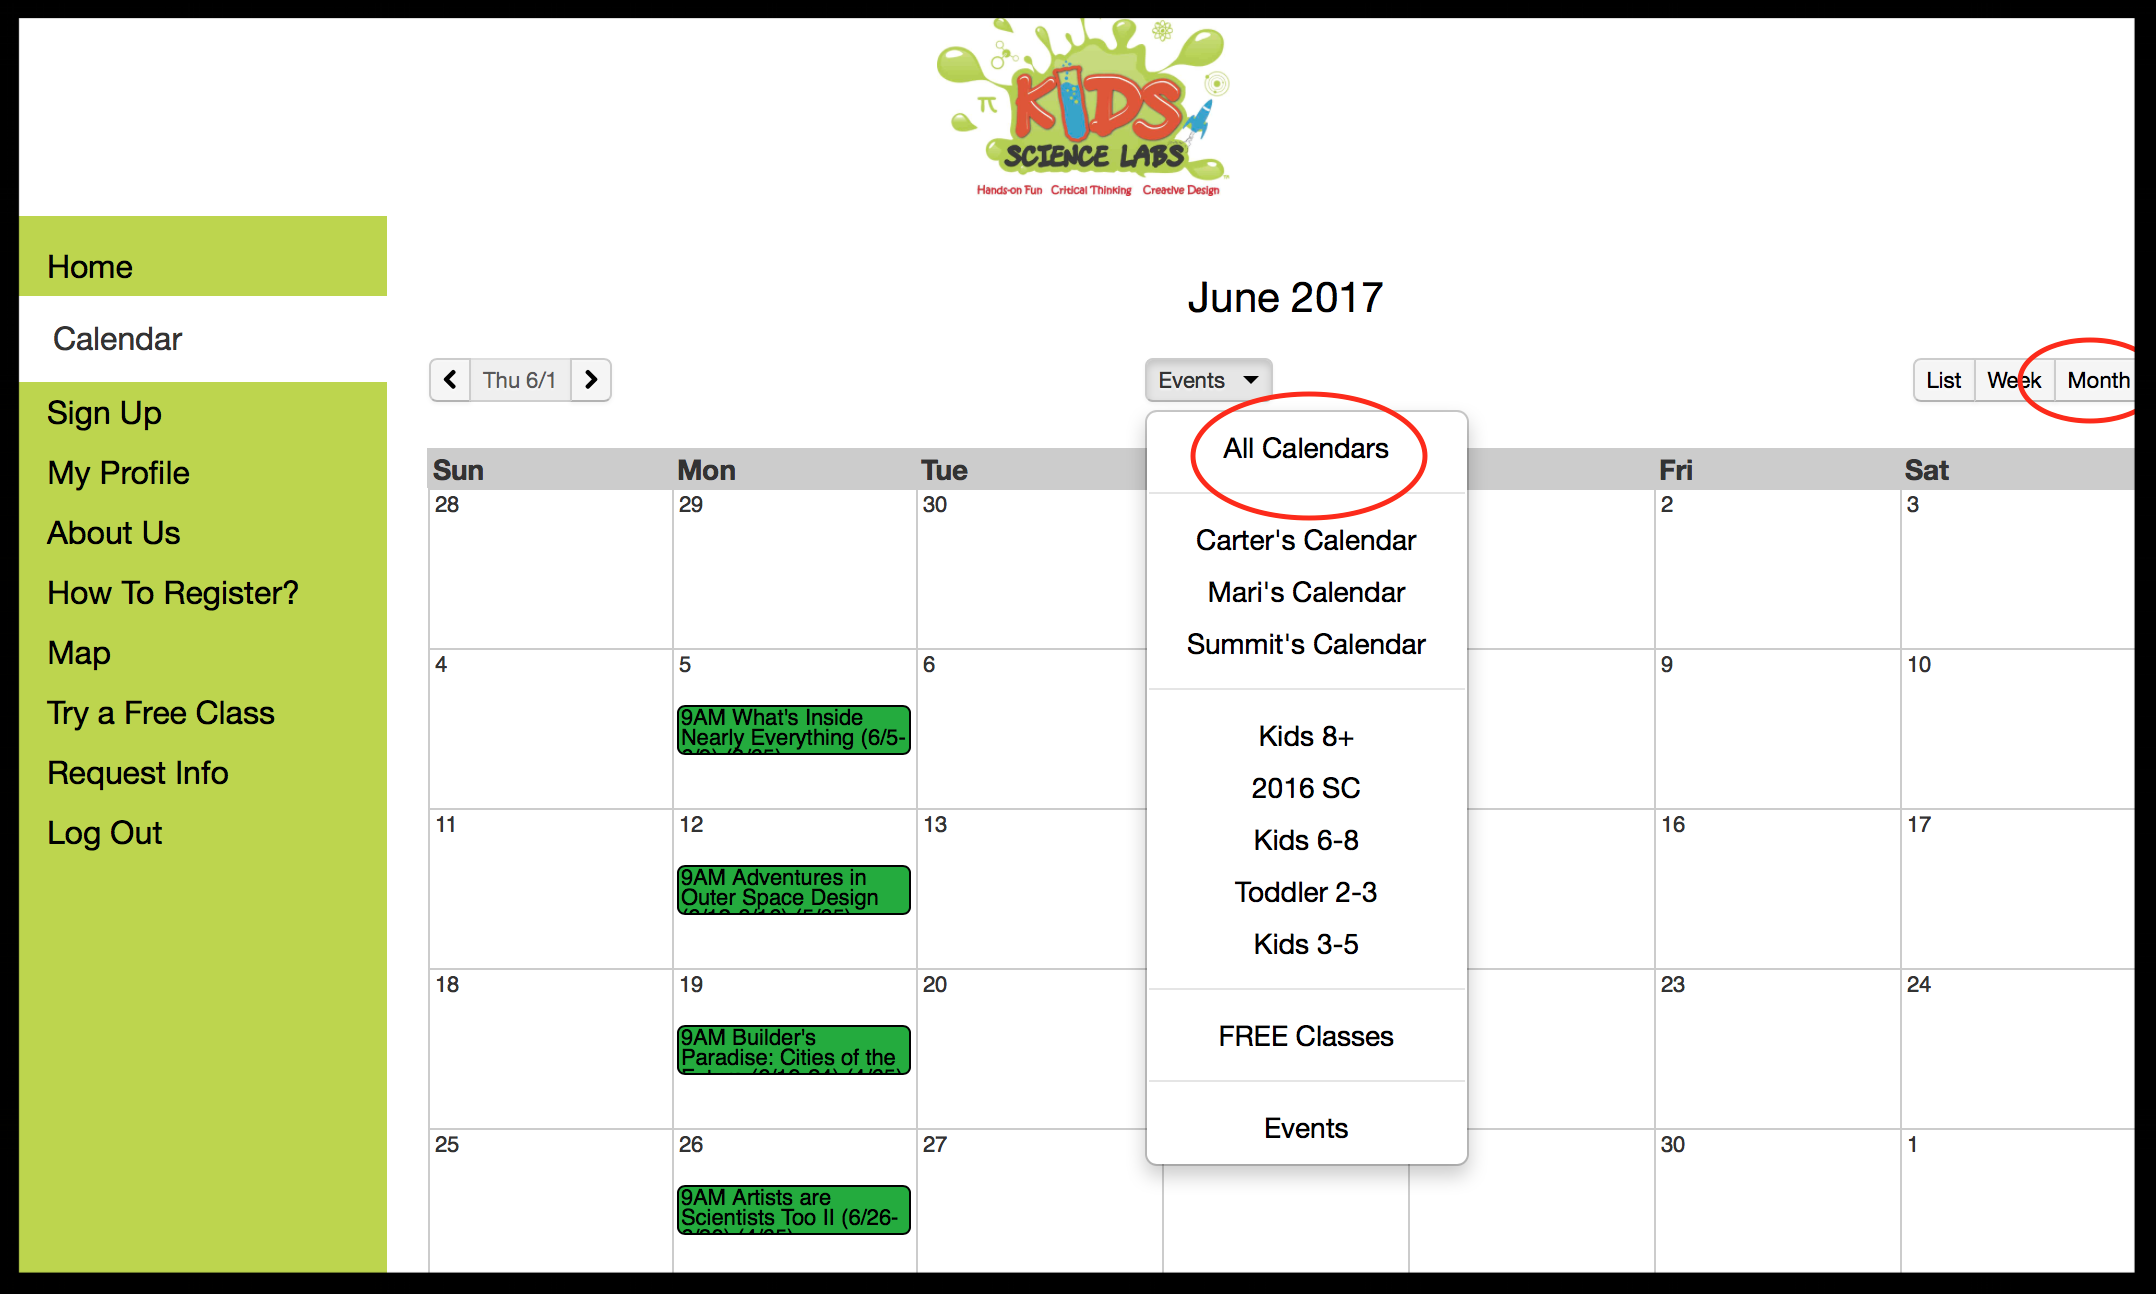 Viewing the calendar on the member website